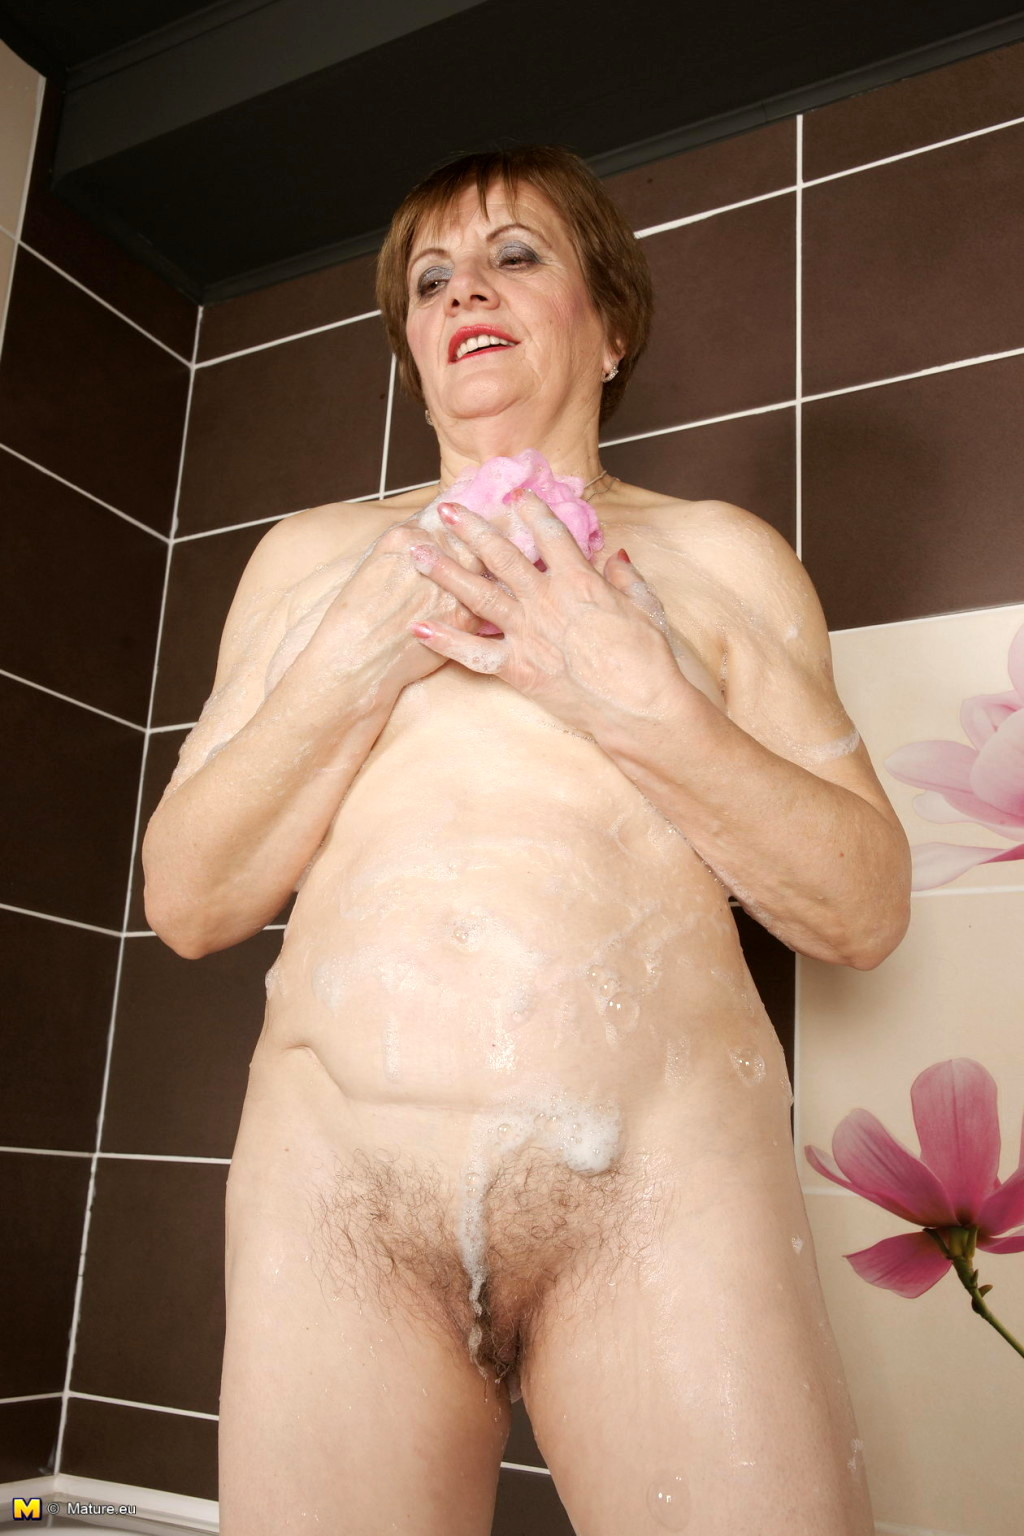 Babe i dag Moden Nl Maturenl Model High Level Granny-2974